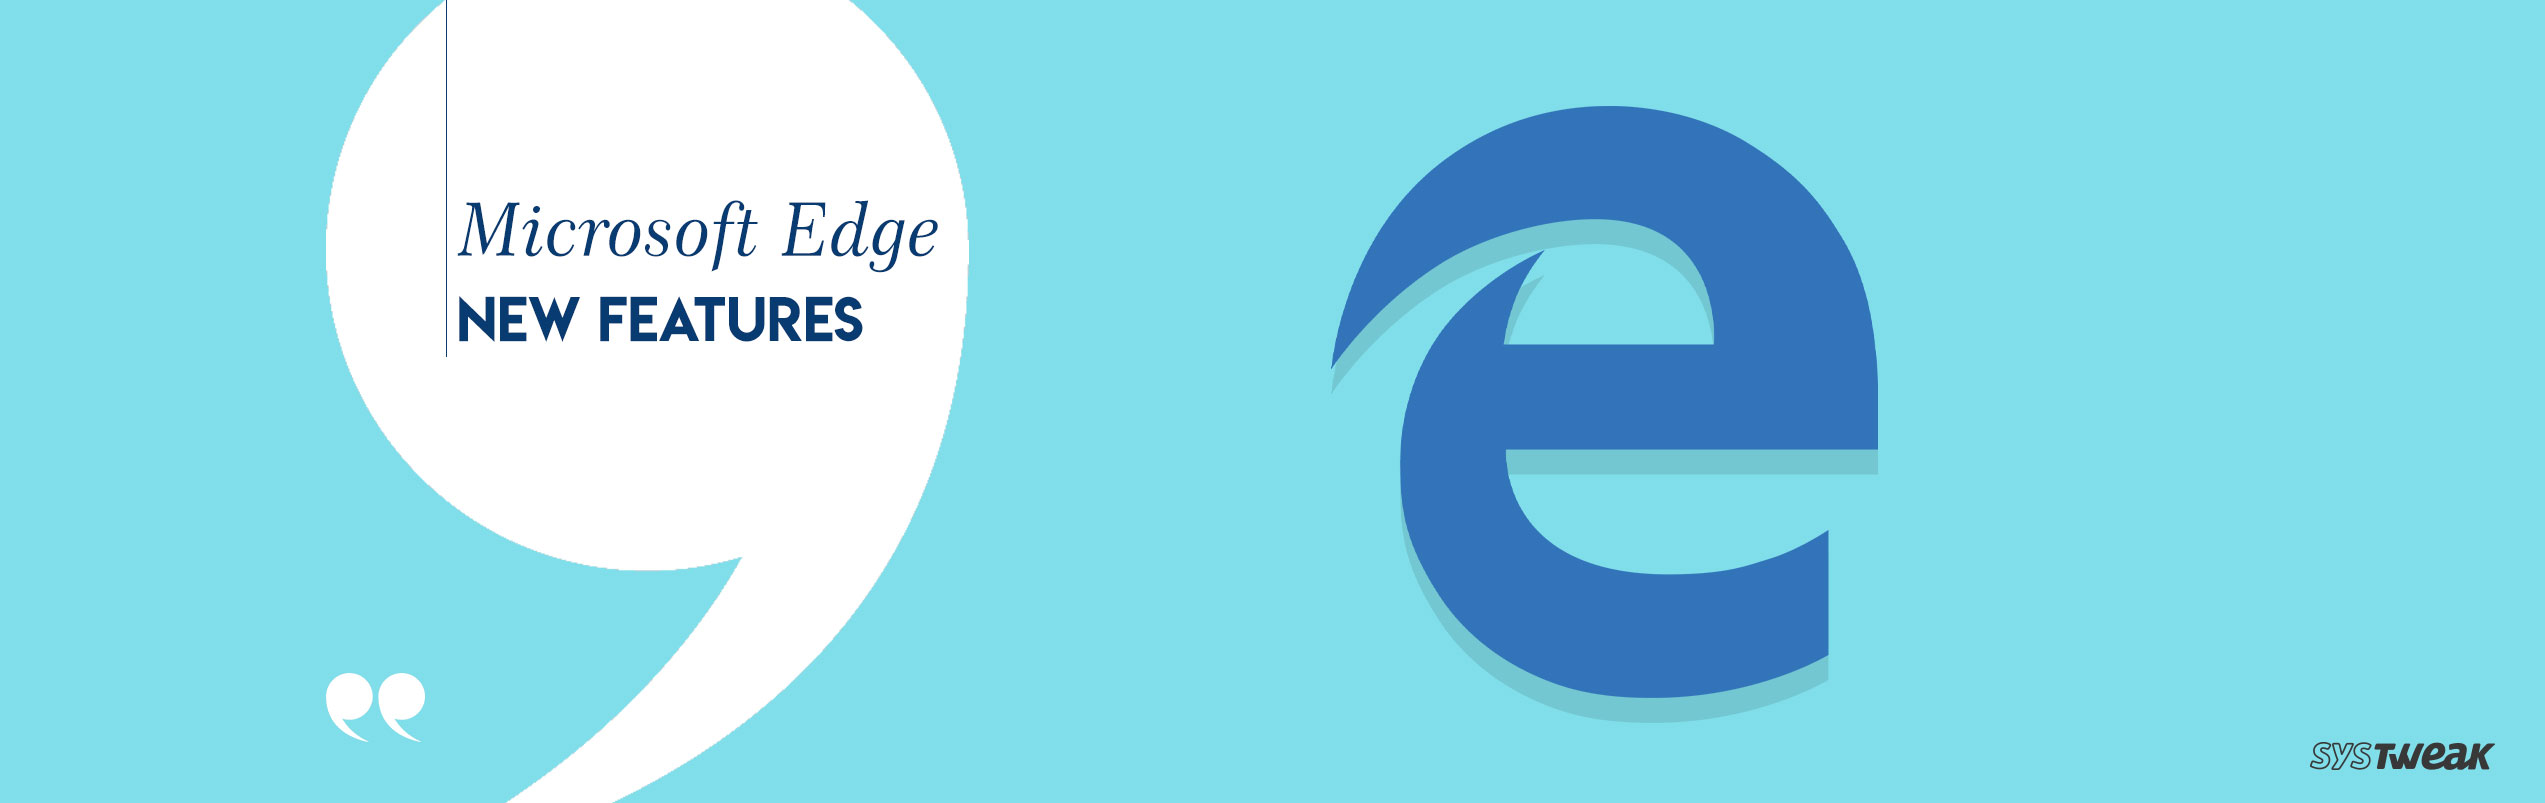 11 Latest Microsoft Edge Updates